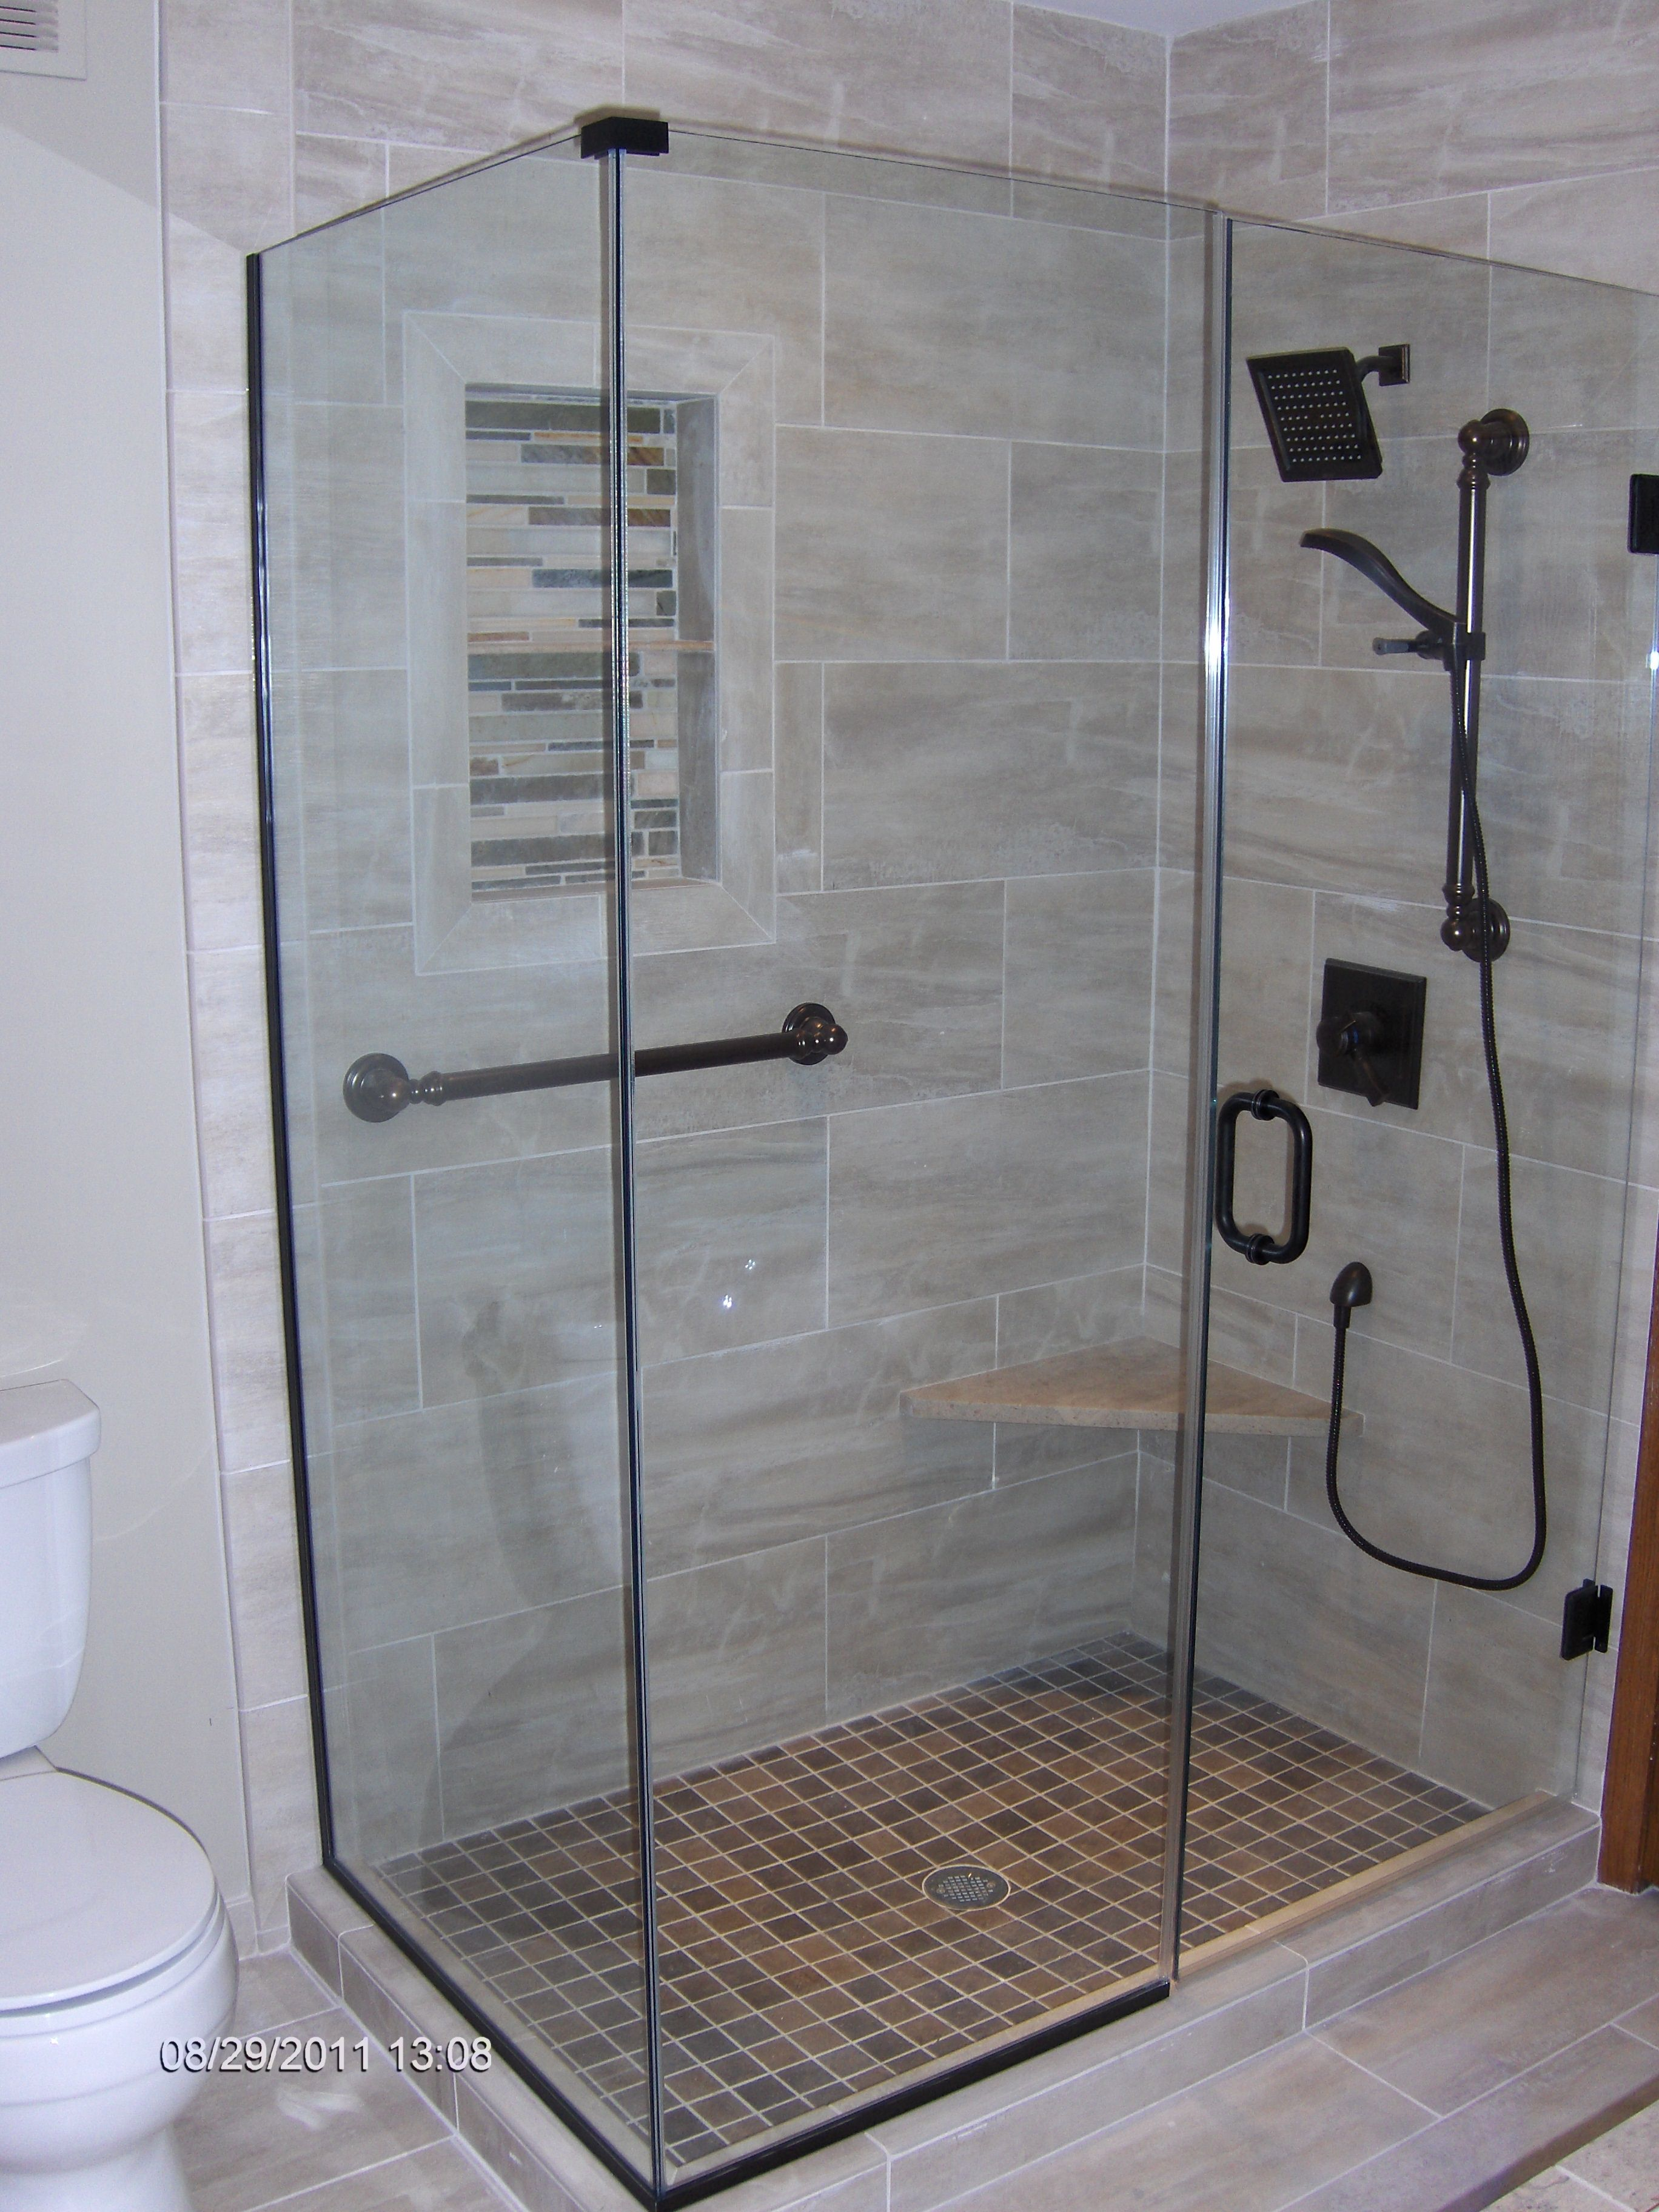 Vafee Com Domain Name Small Bathroom With Shower Glass Shower